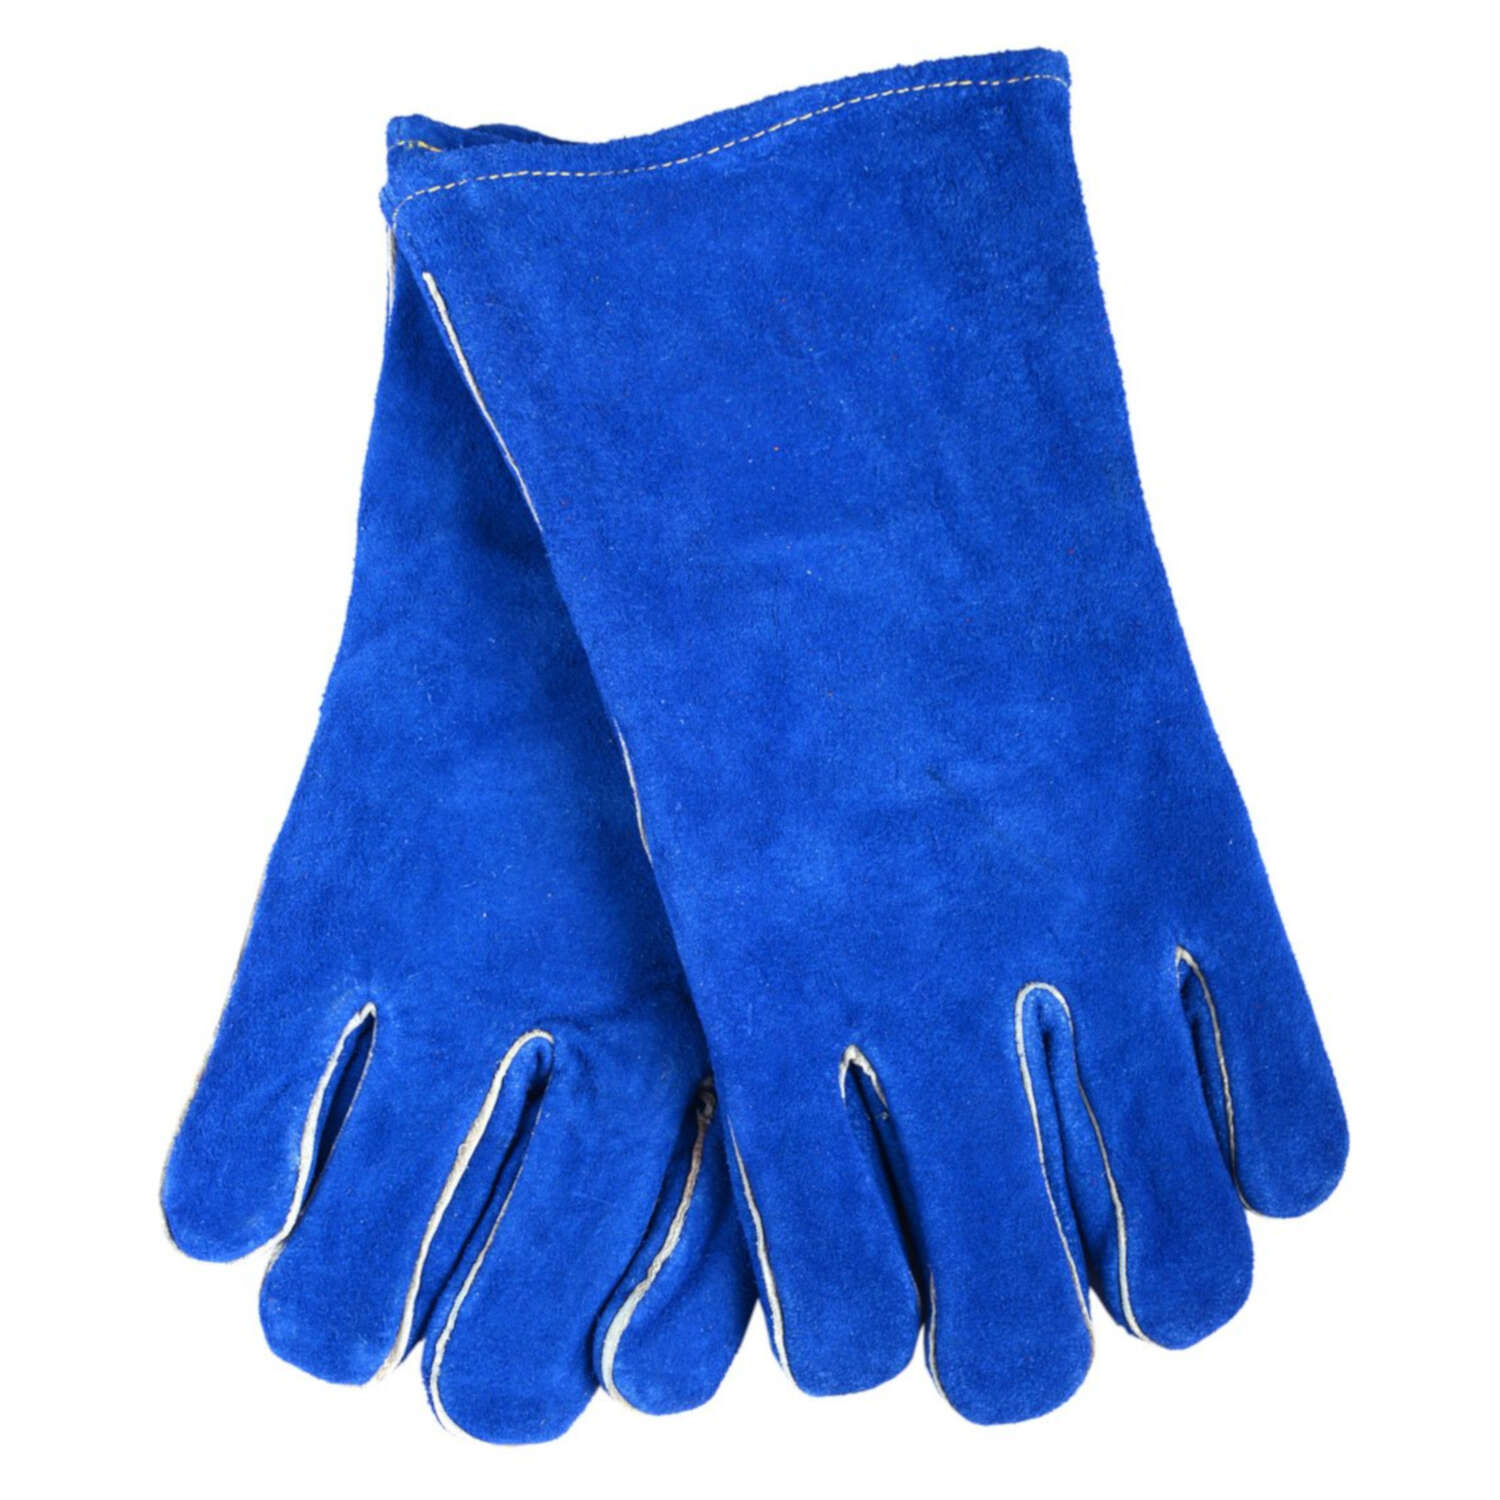 Forney 13.5 in. Leather Welding Gloves Blue L 1 pk